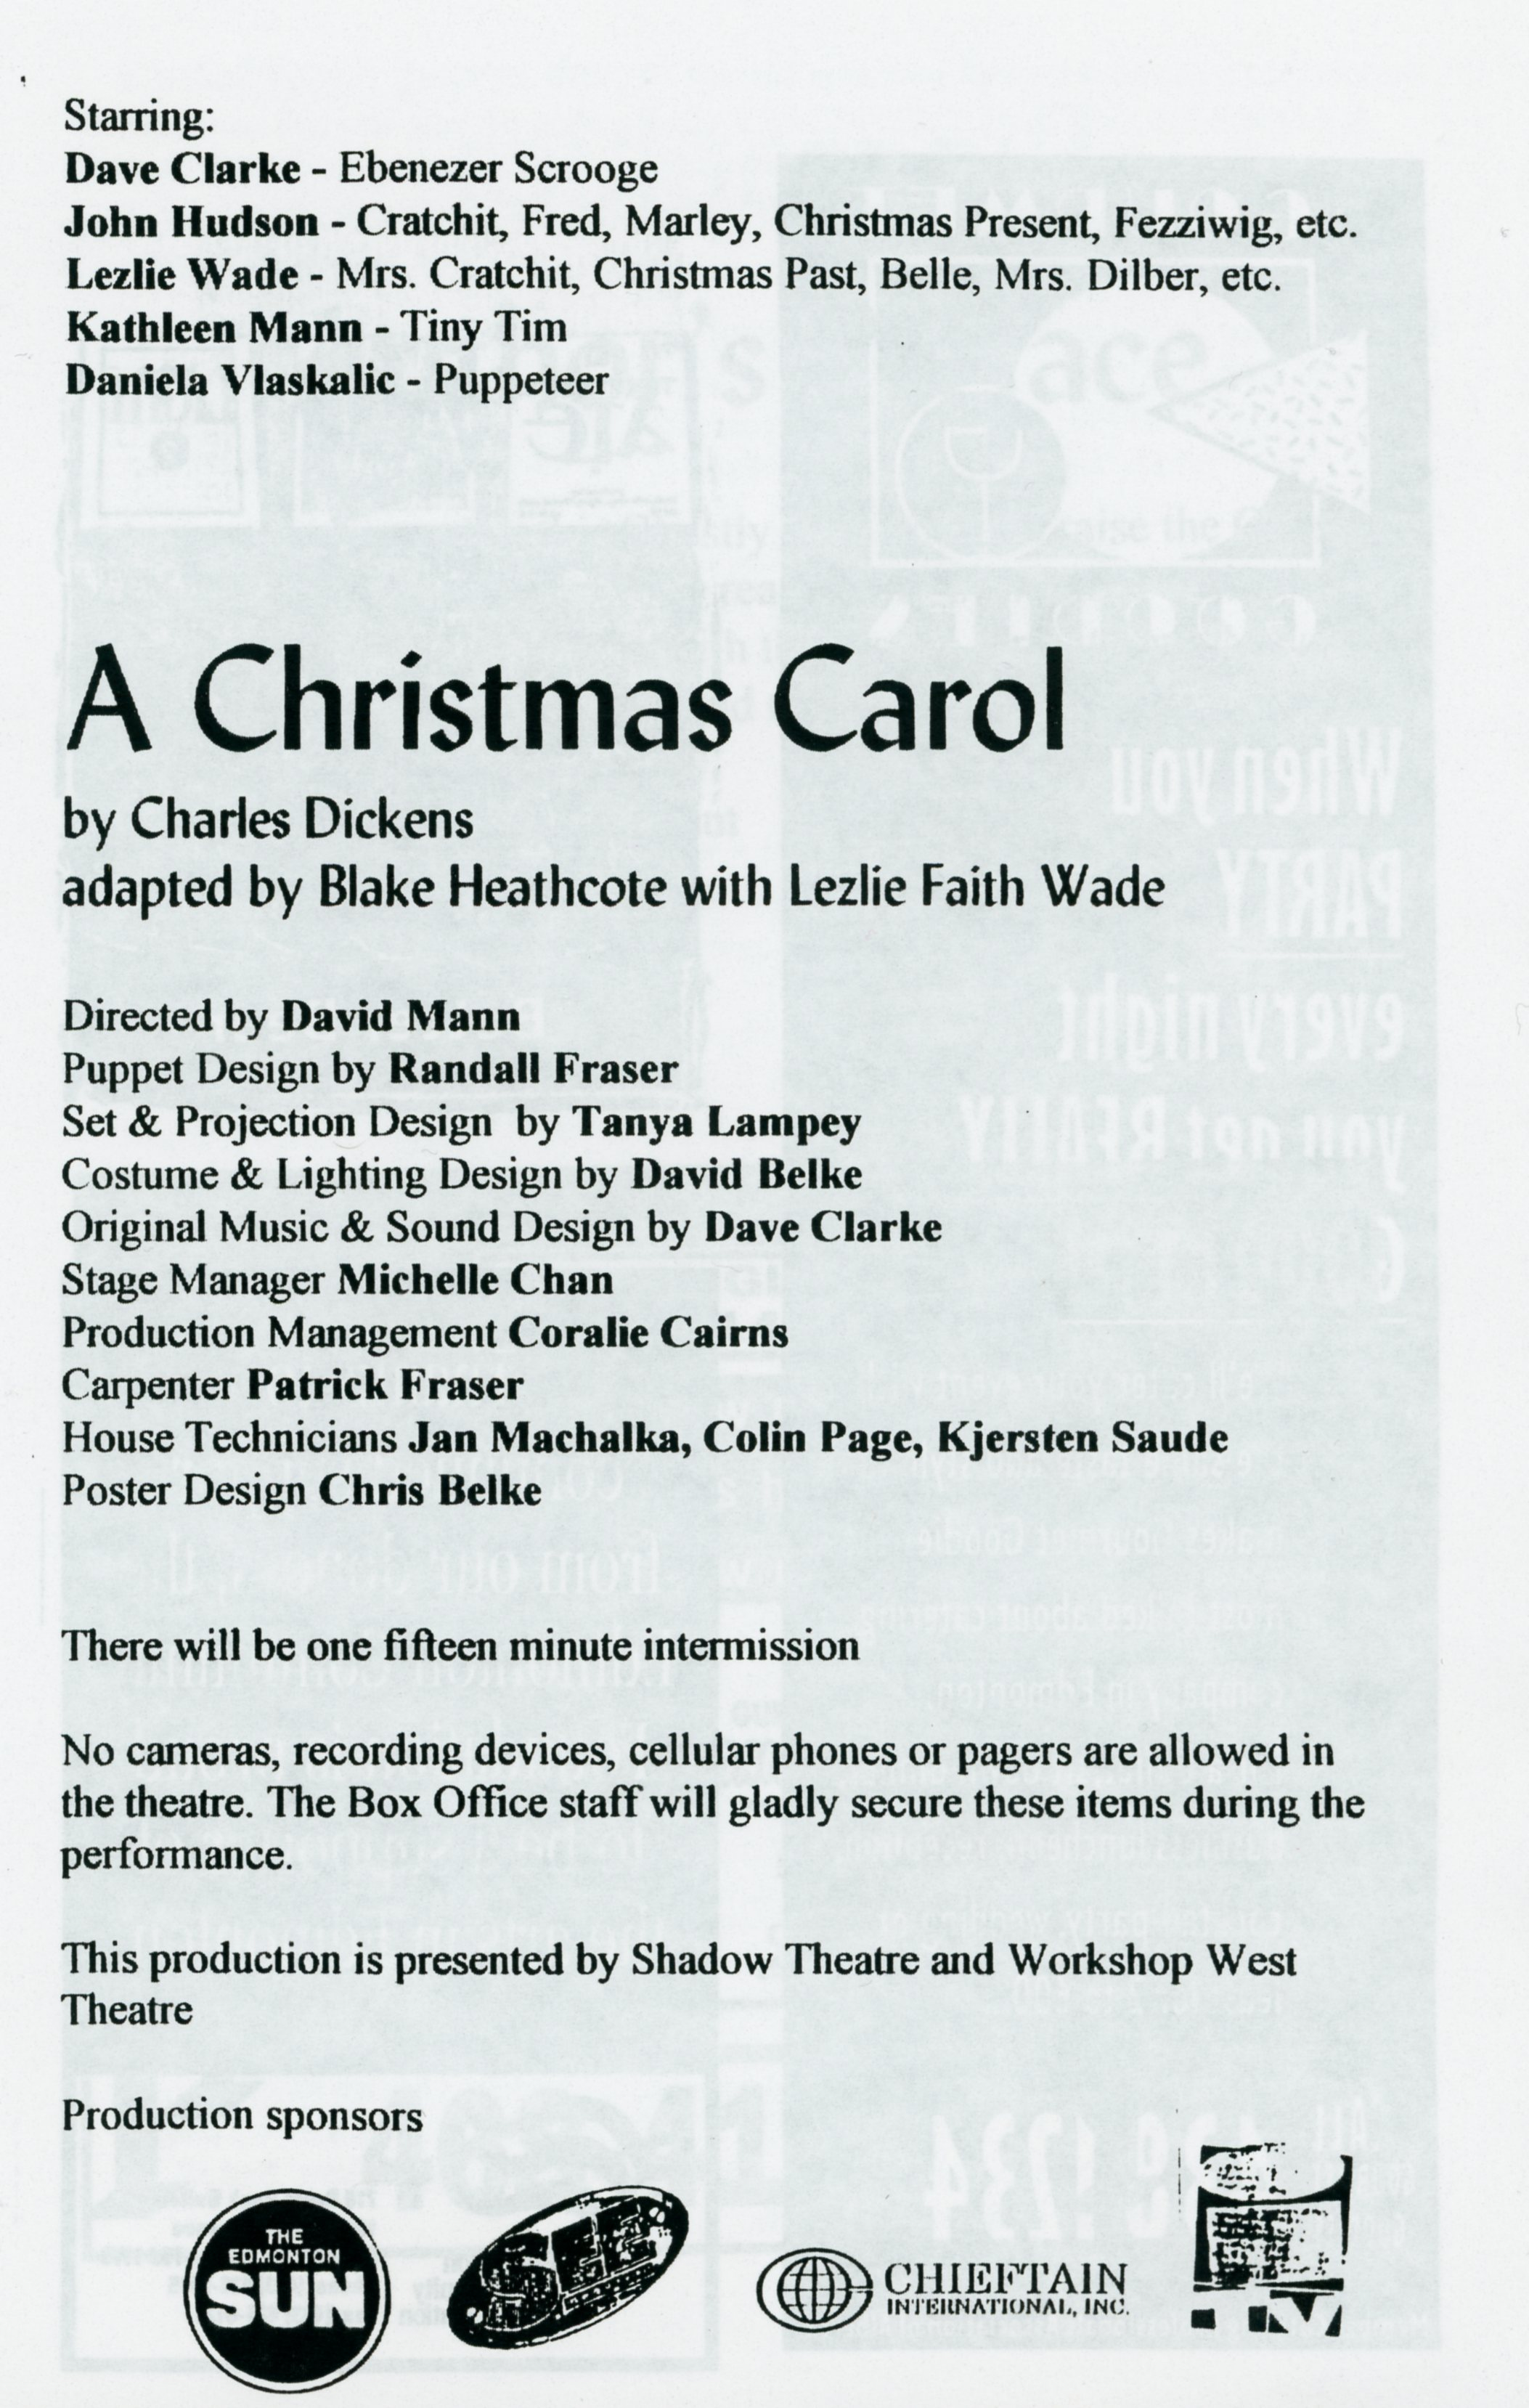 A Christmas Carol (December, 1998)-Production Information_JPEG.jpg